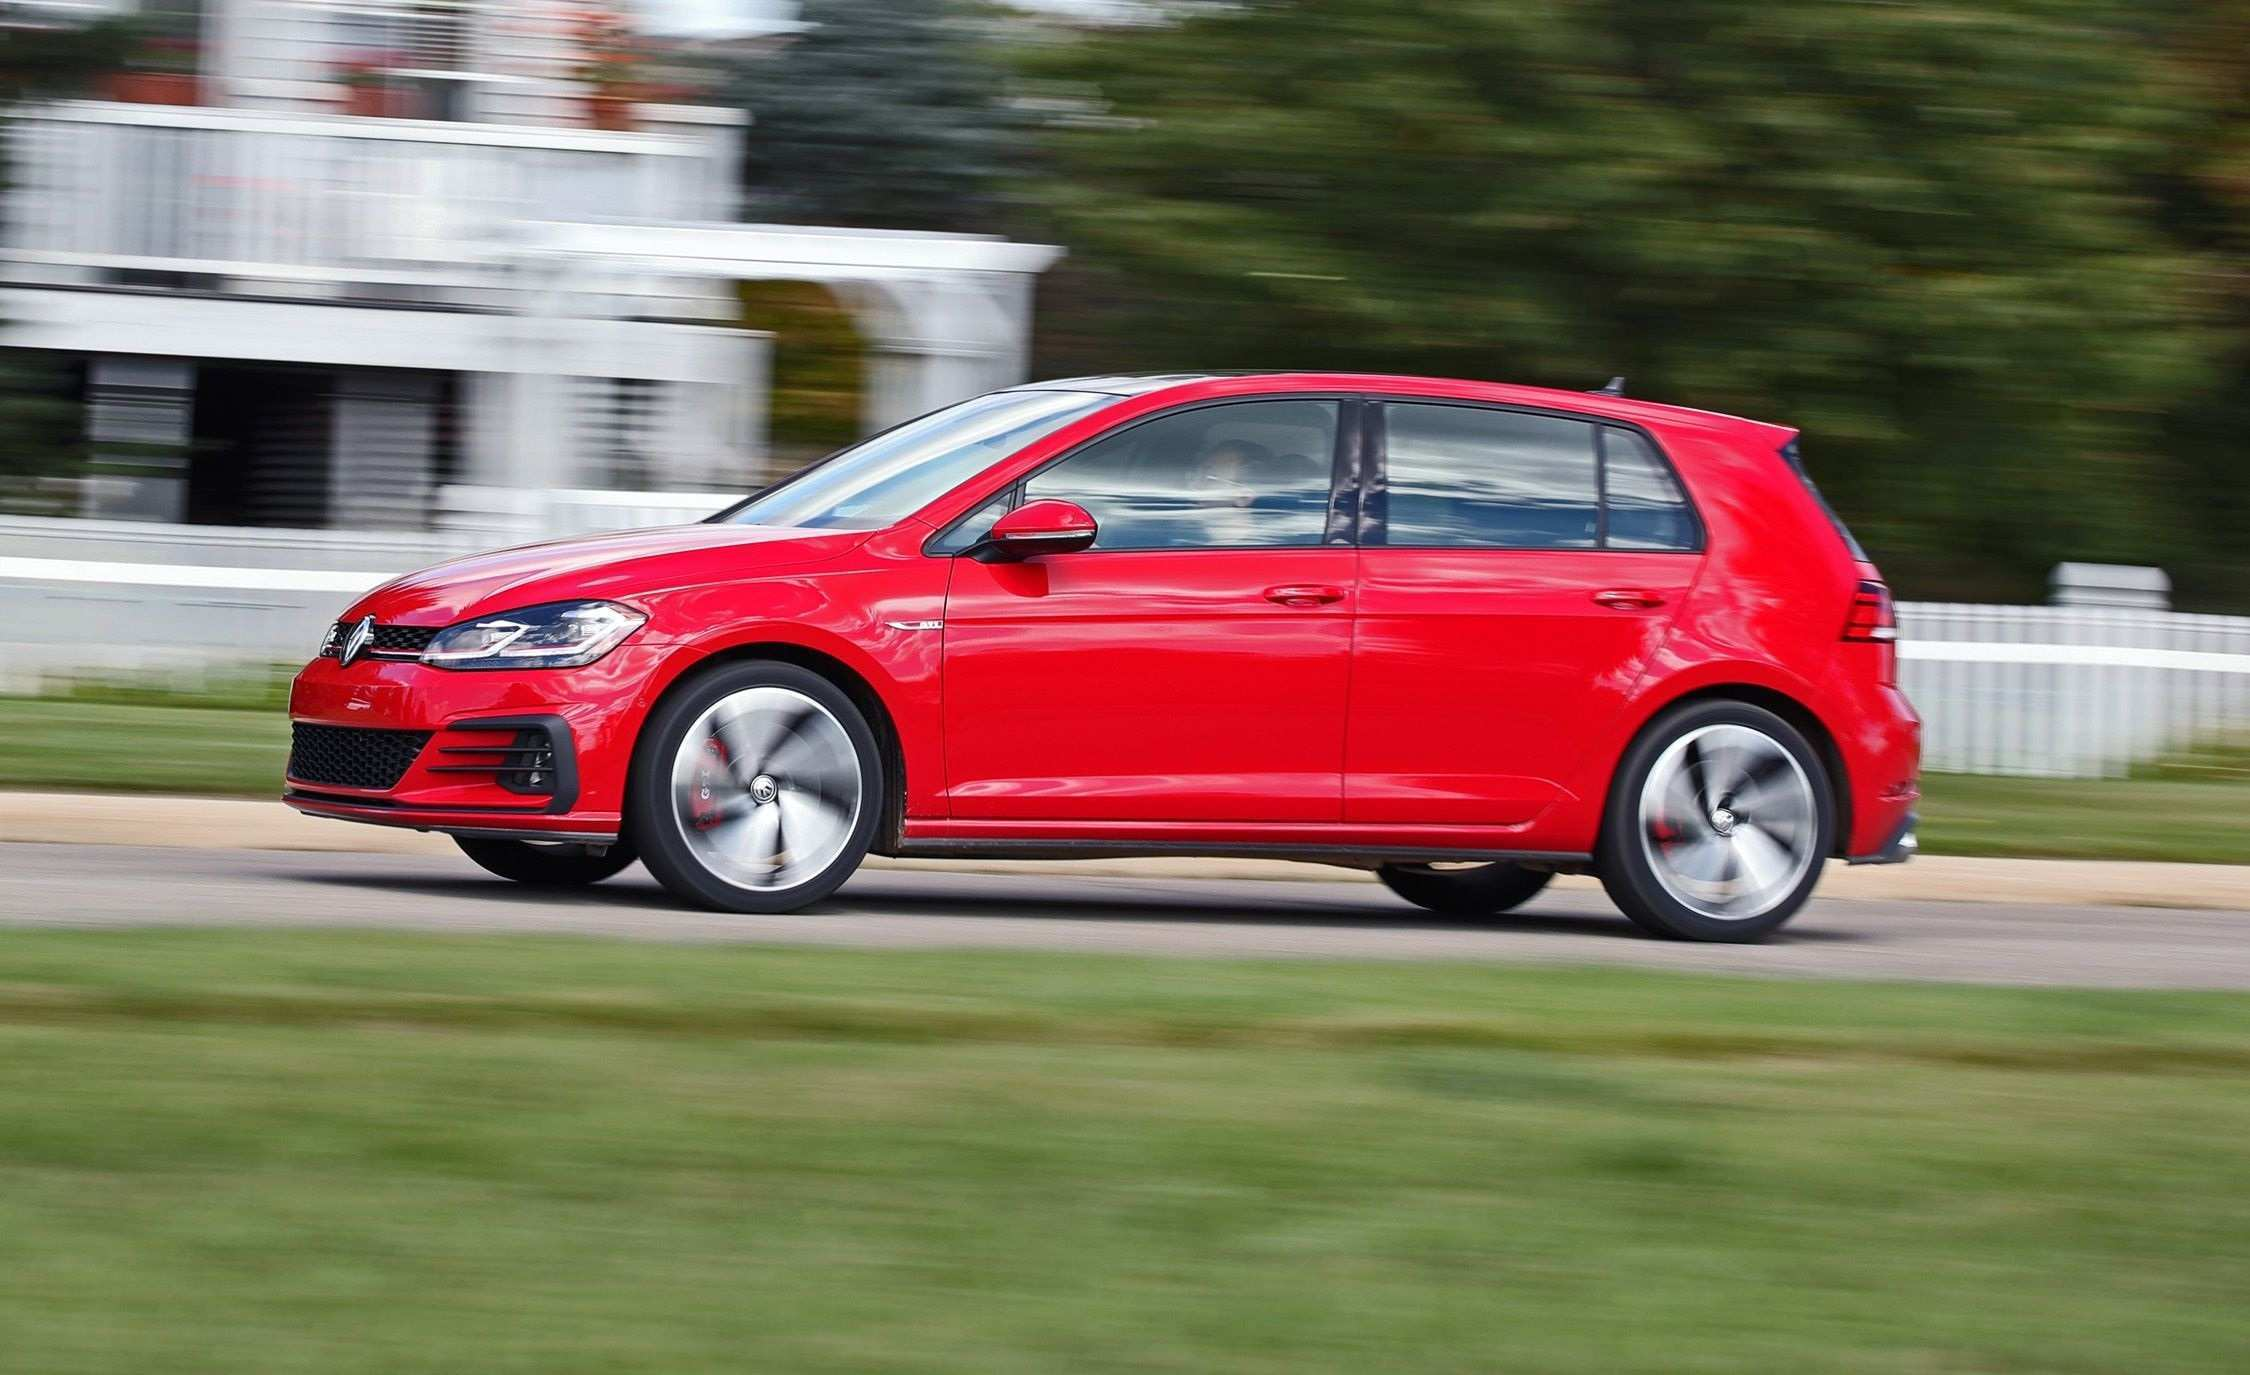 73 The Best 2020 Volkswagen Golf GTD Picture